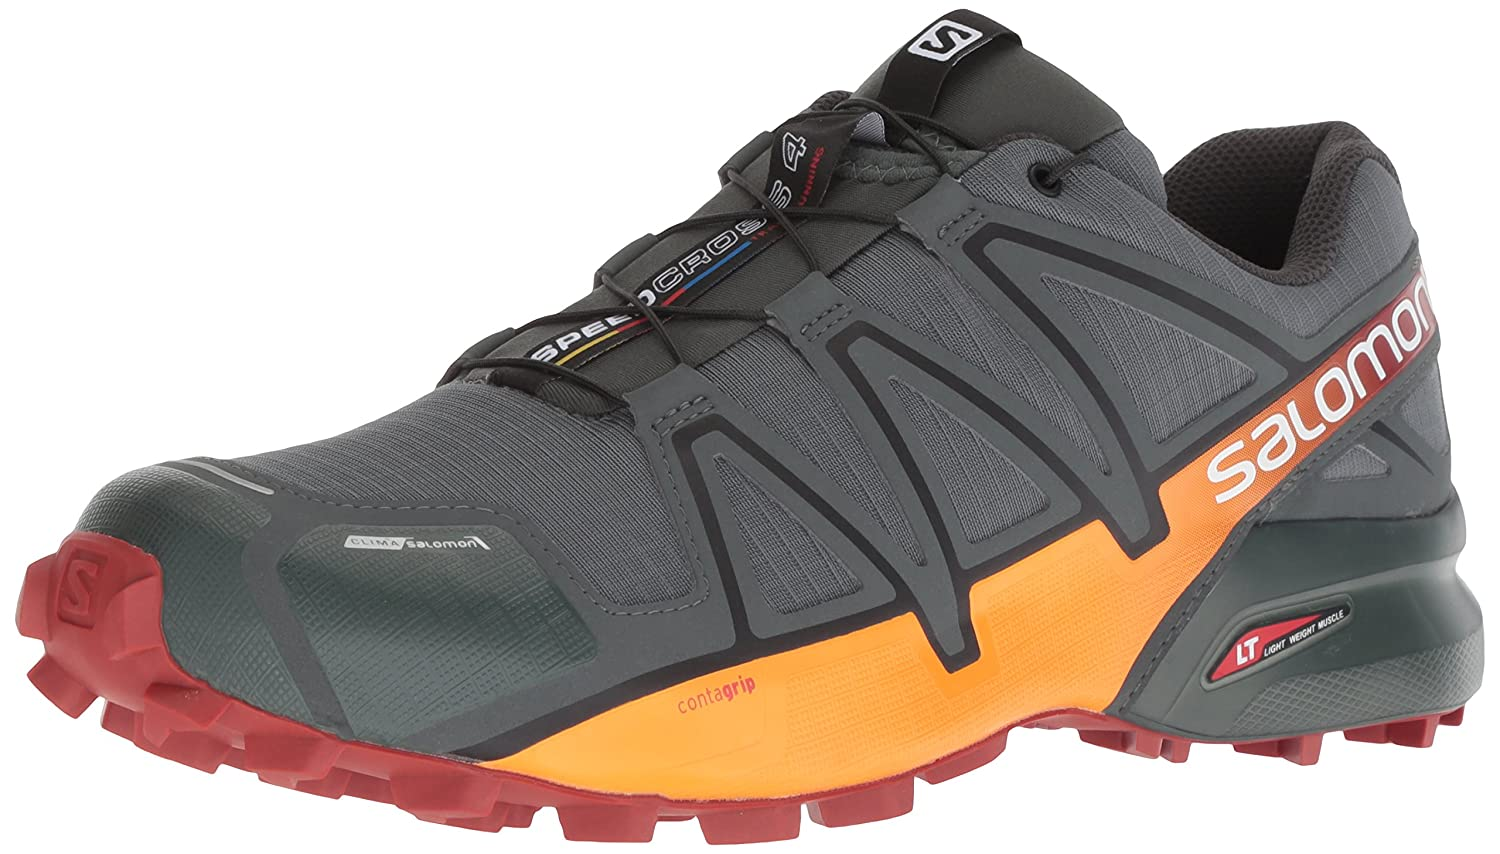 5b806b297 Salomon Speedcross 4 CS Trail Running Shoes - AW18  Amazon.co.uk  Shoes    Bags